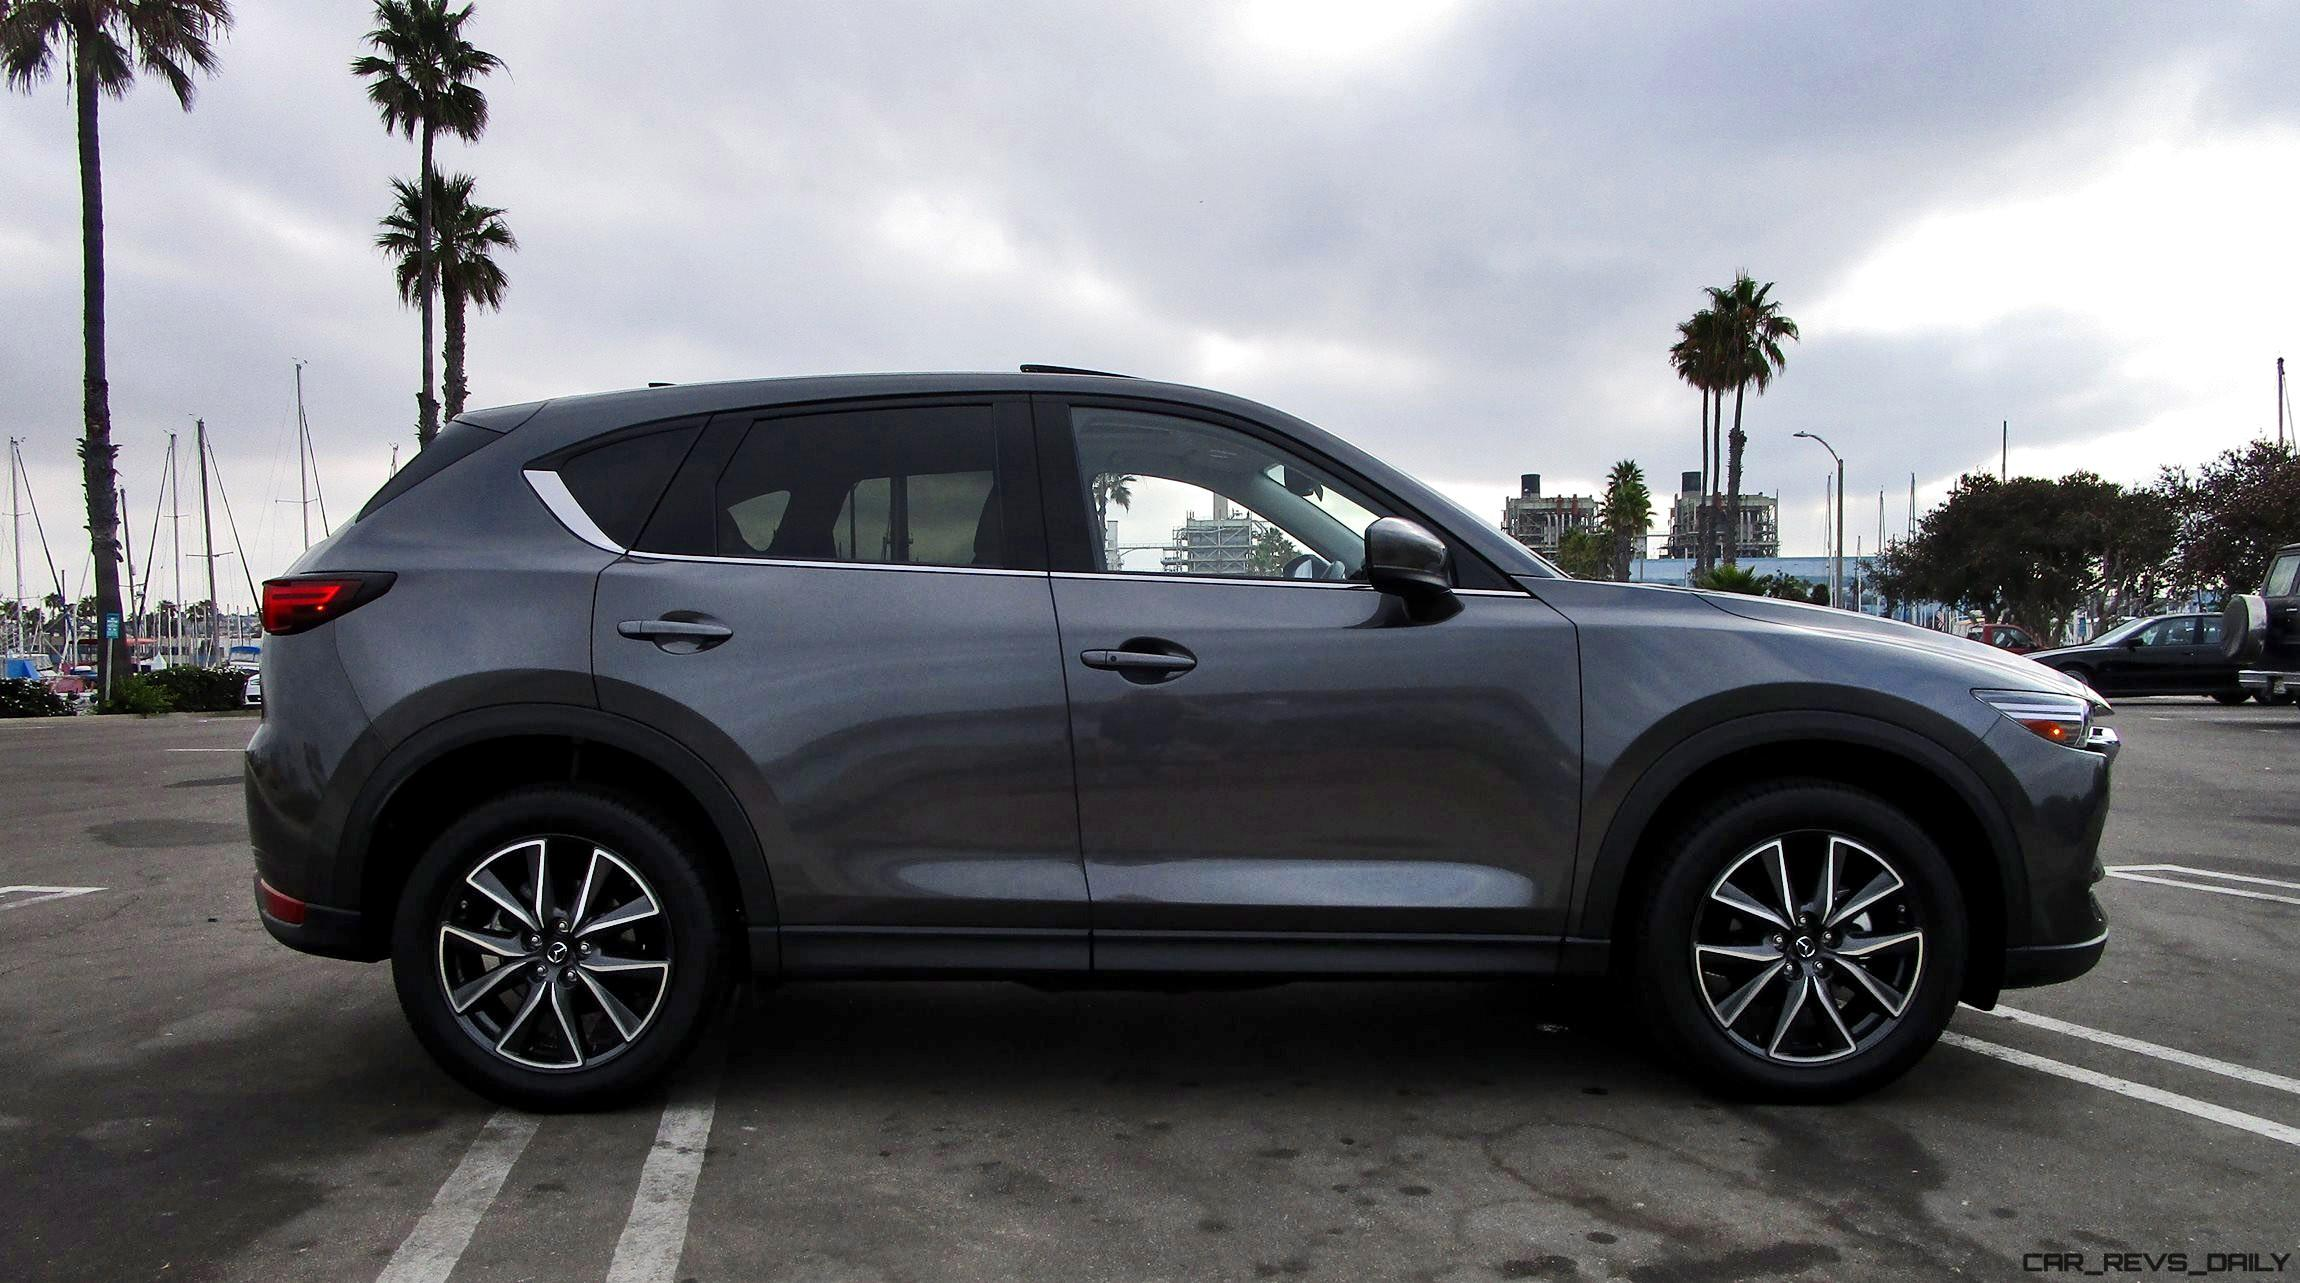 2017 mazda cx 5 grand touring fwd road test review by ben lewis. Black Bedroom Furniture Sets. Home Design Ideas